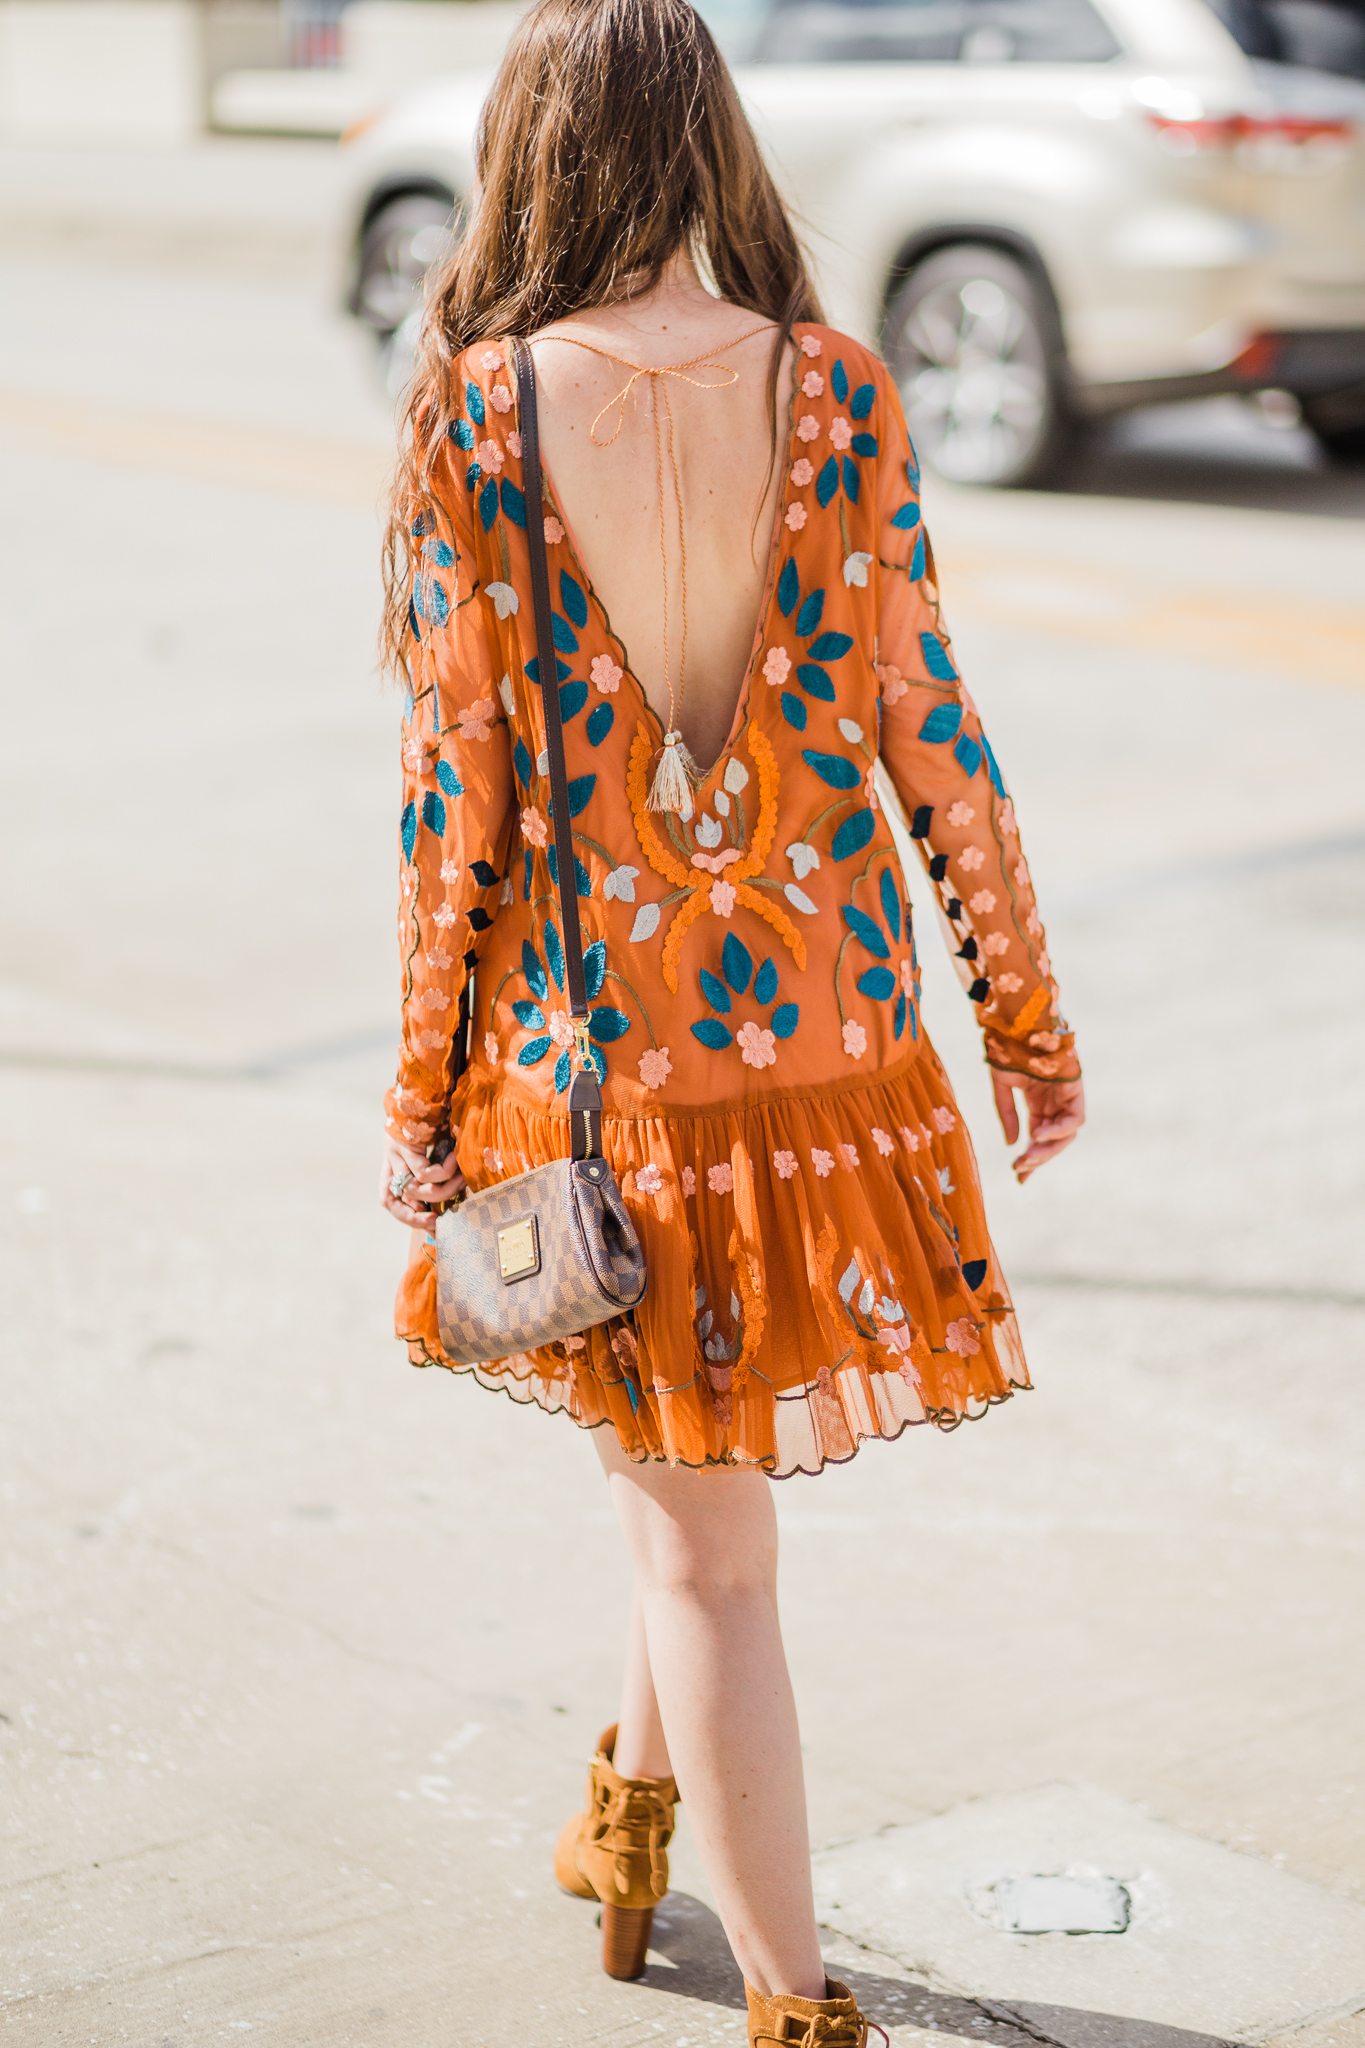 How to Dress Classy the Right Way, free people hearts our wild dress, free people hearts our wild burnt orange dress